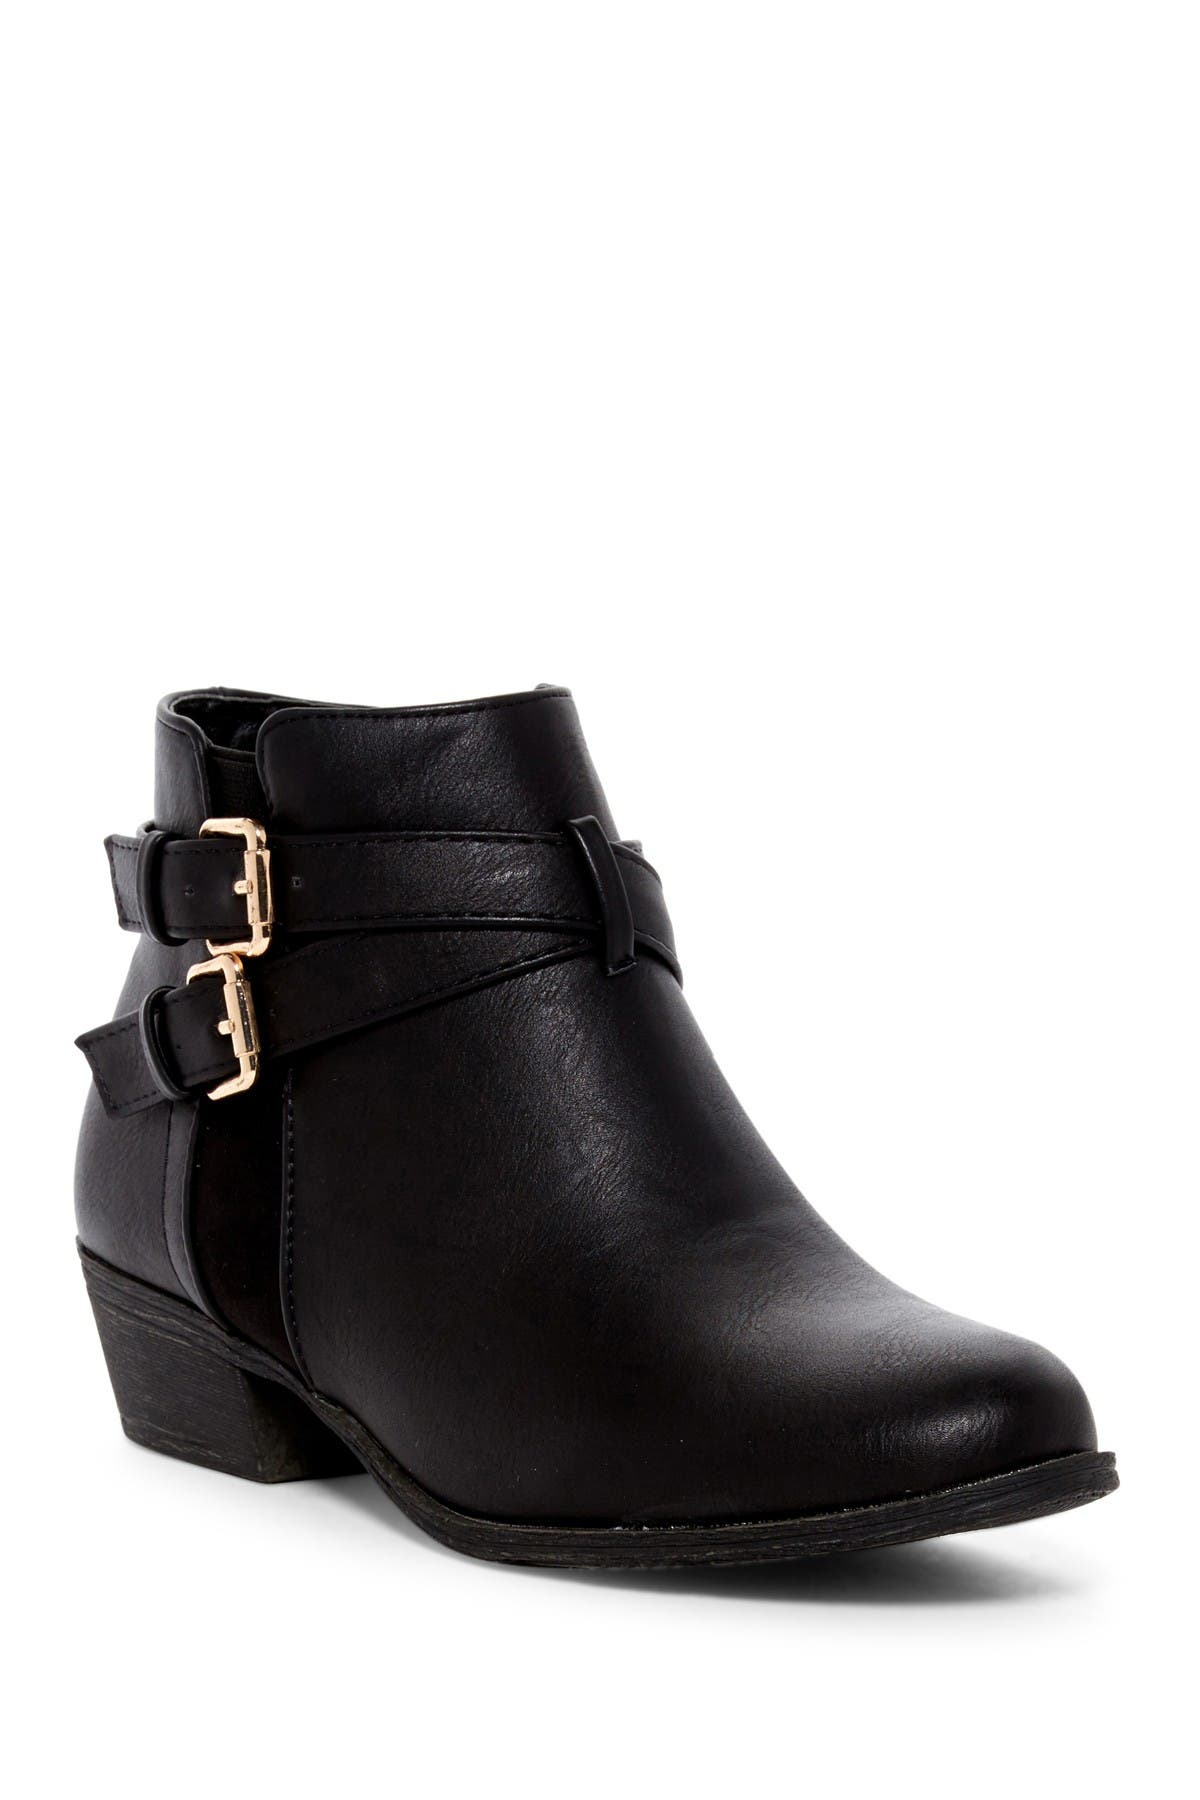 Image of Top Moda Chase Boot